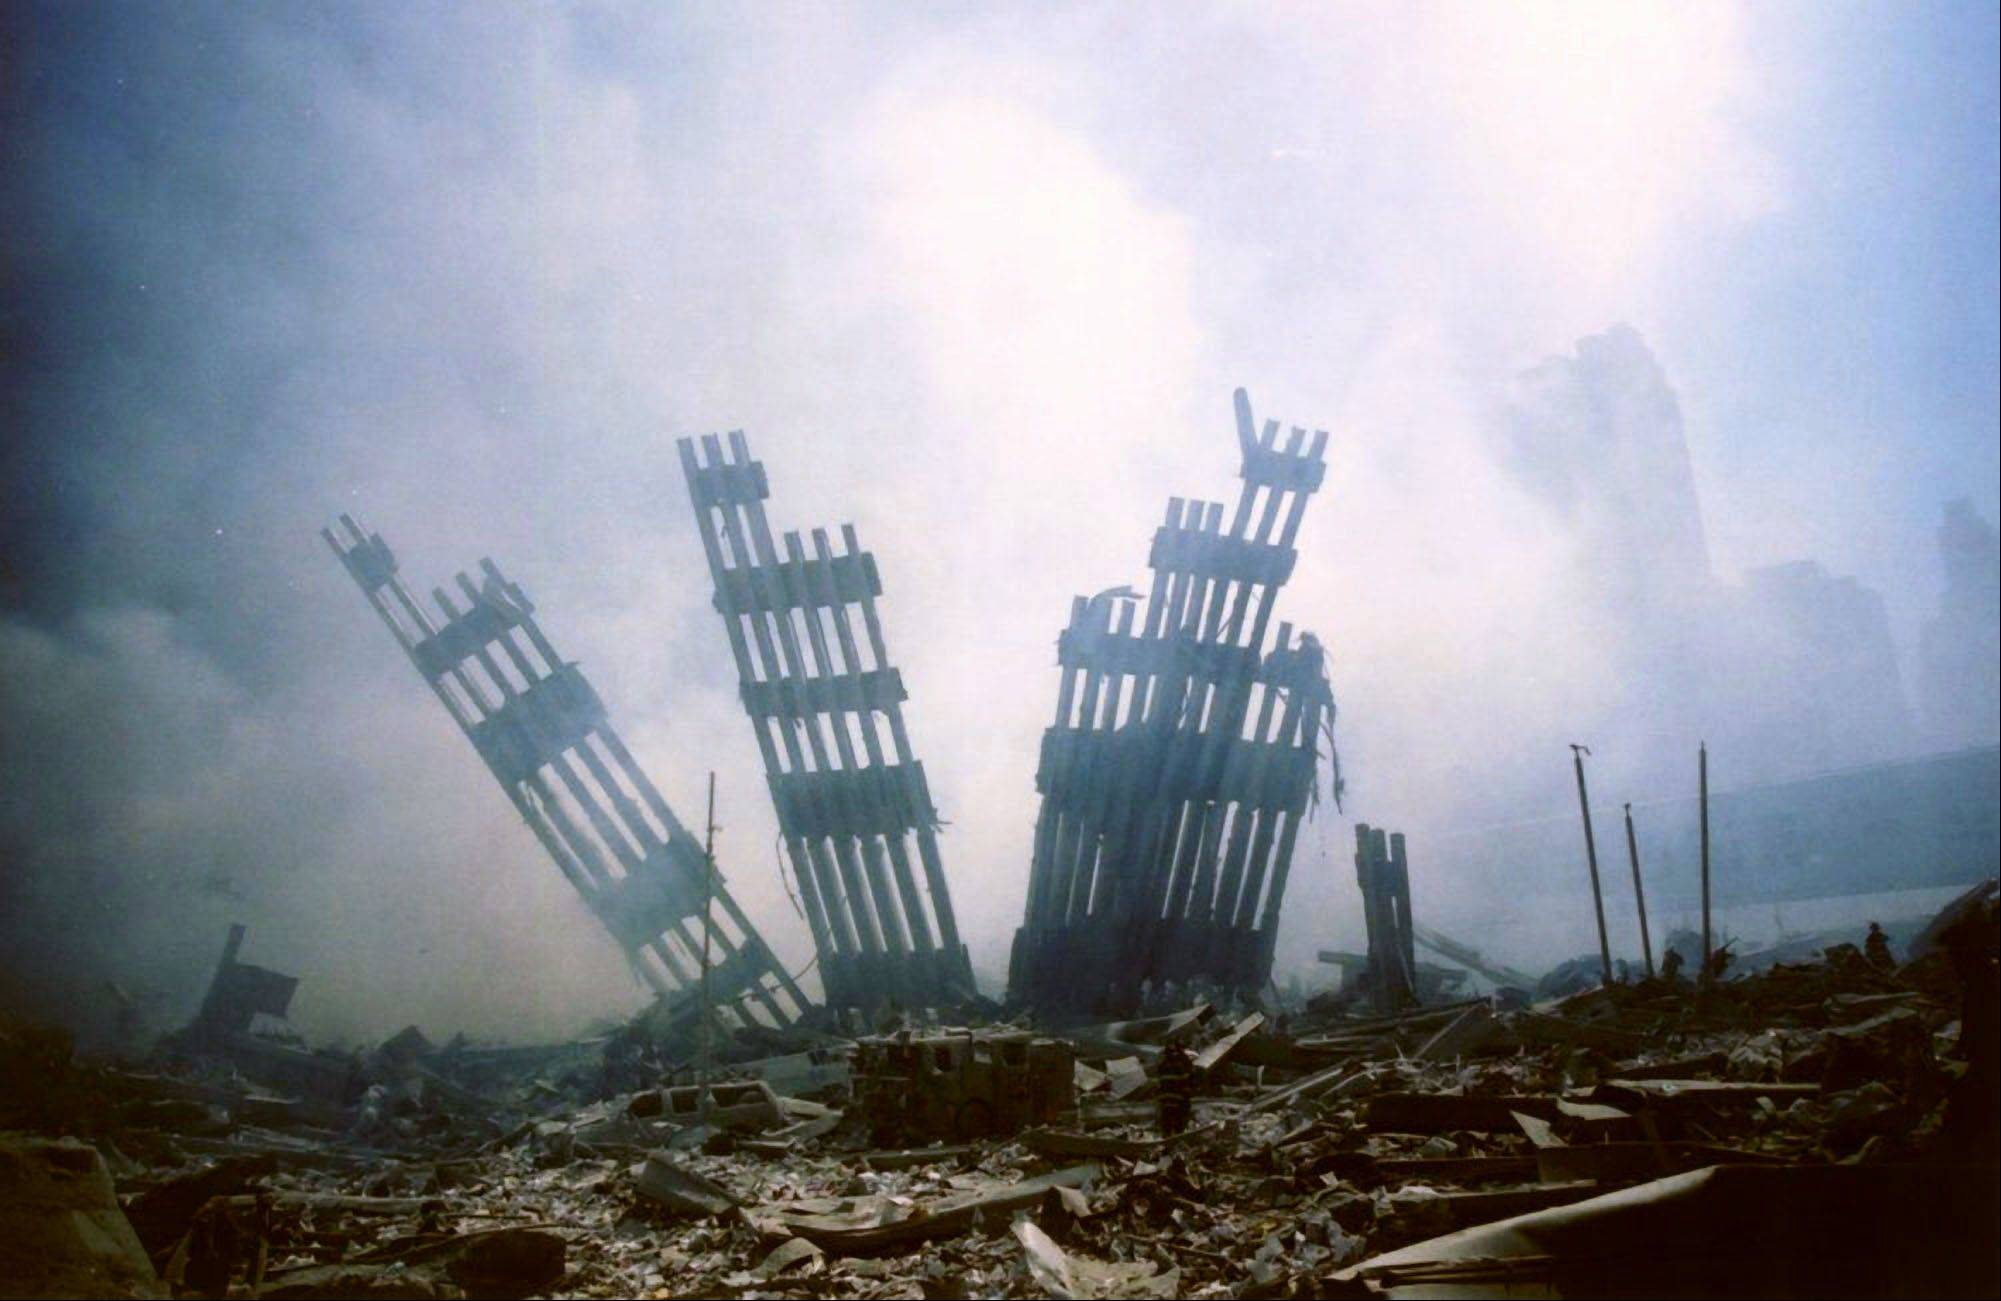 In this Sept. 11, 2001 file photo, the remains of the World Trade Center stands amid the debris following the terrorist attack on the building in New York.